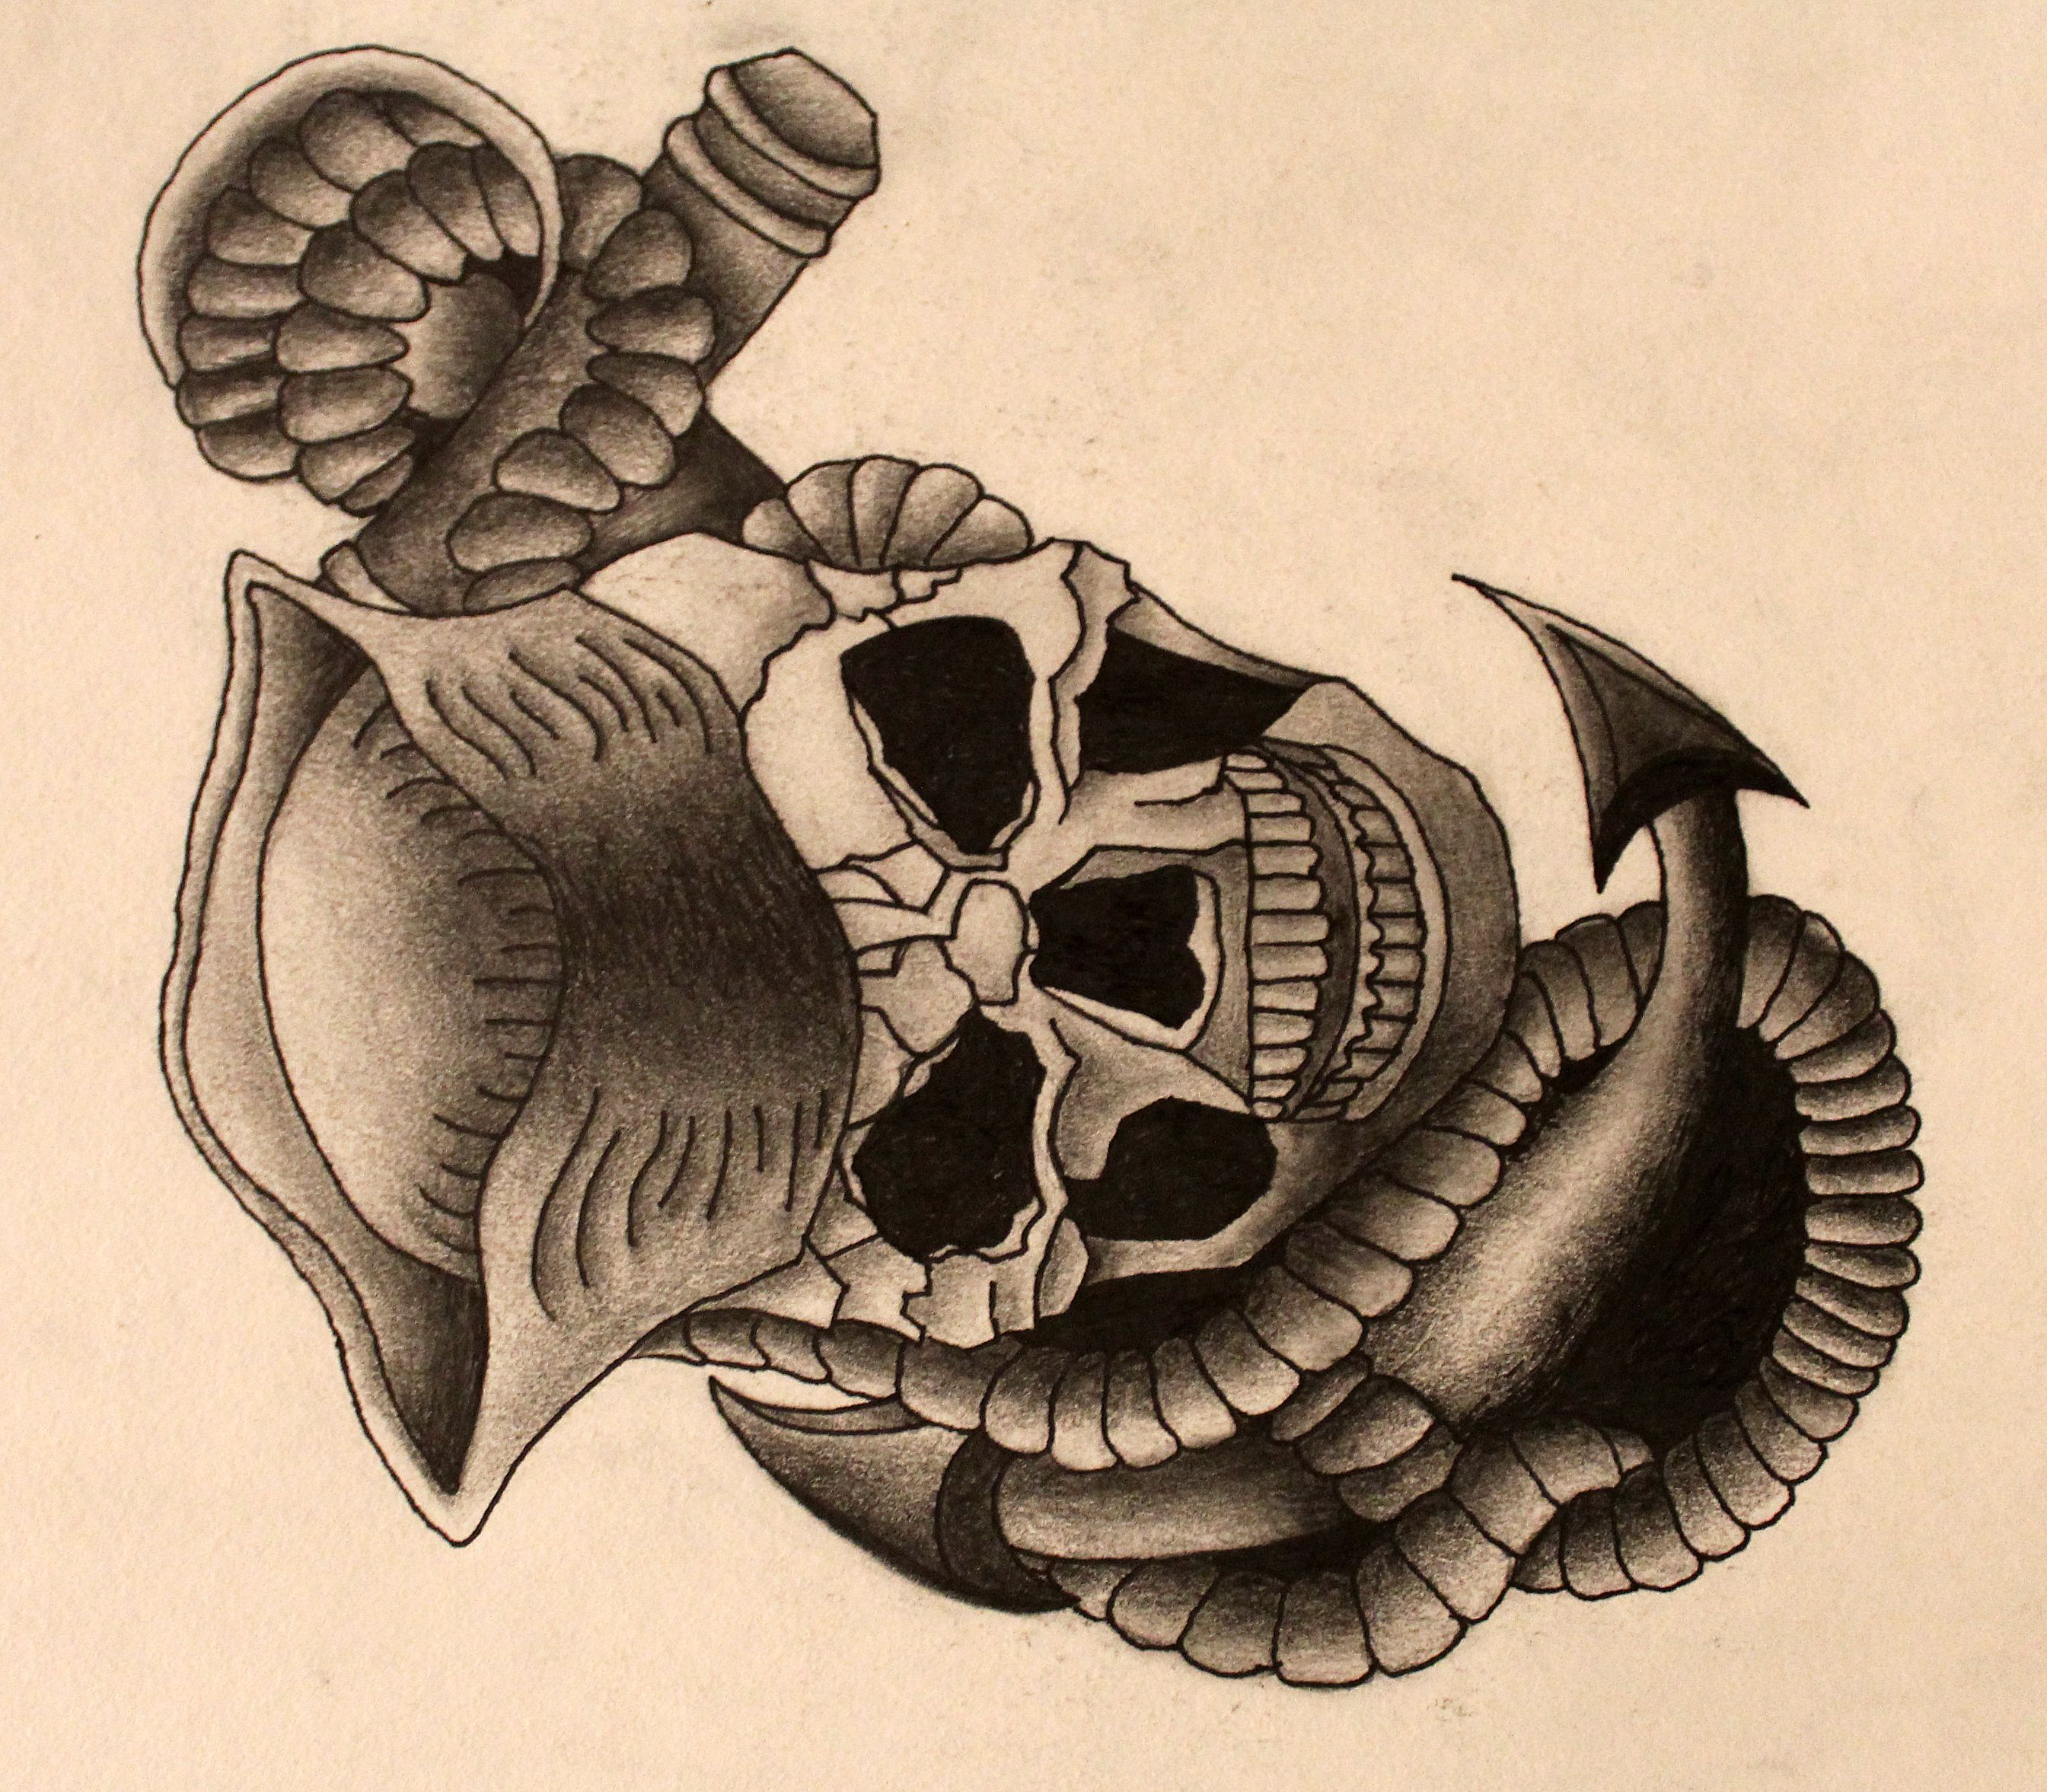 First tattoo design commission for an individual in the